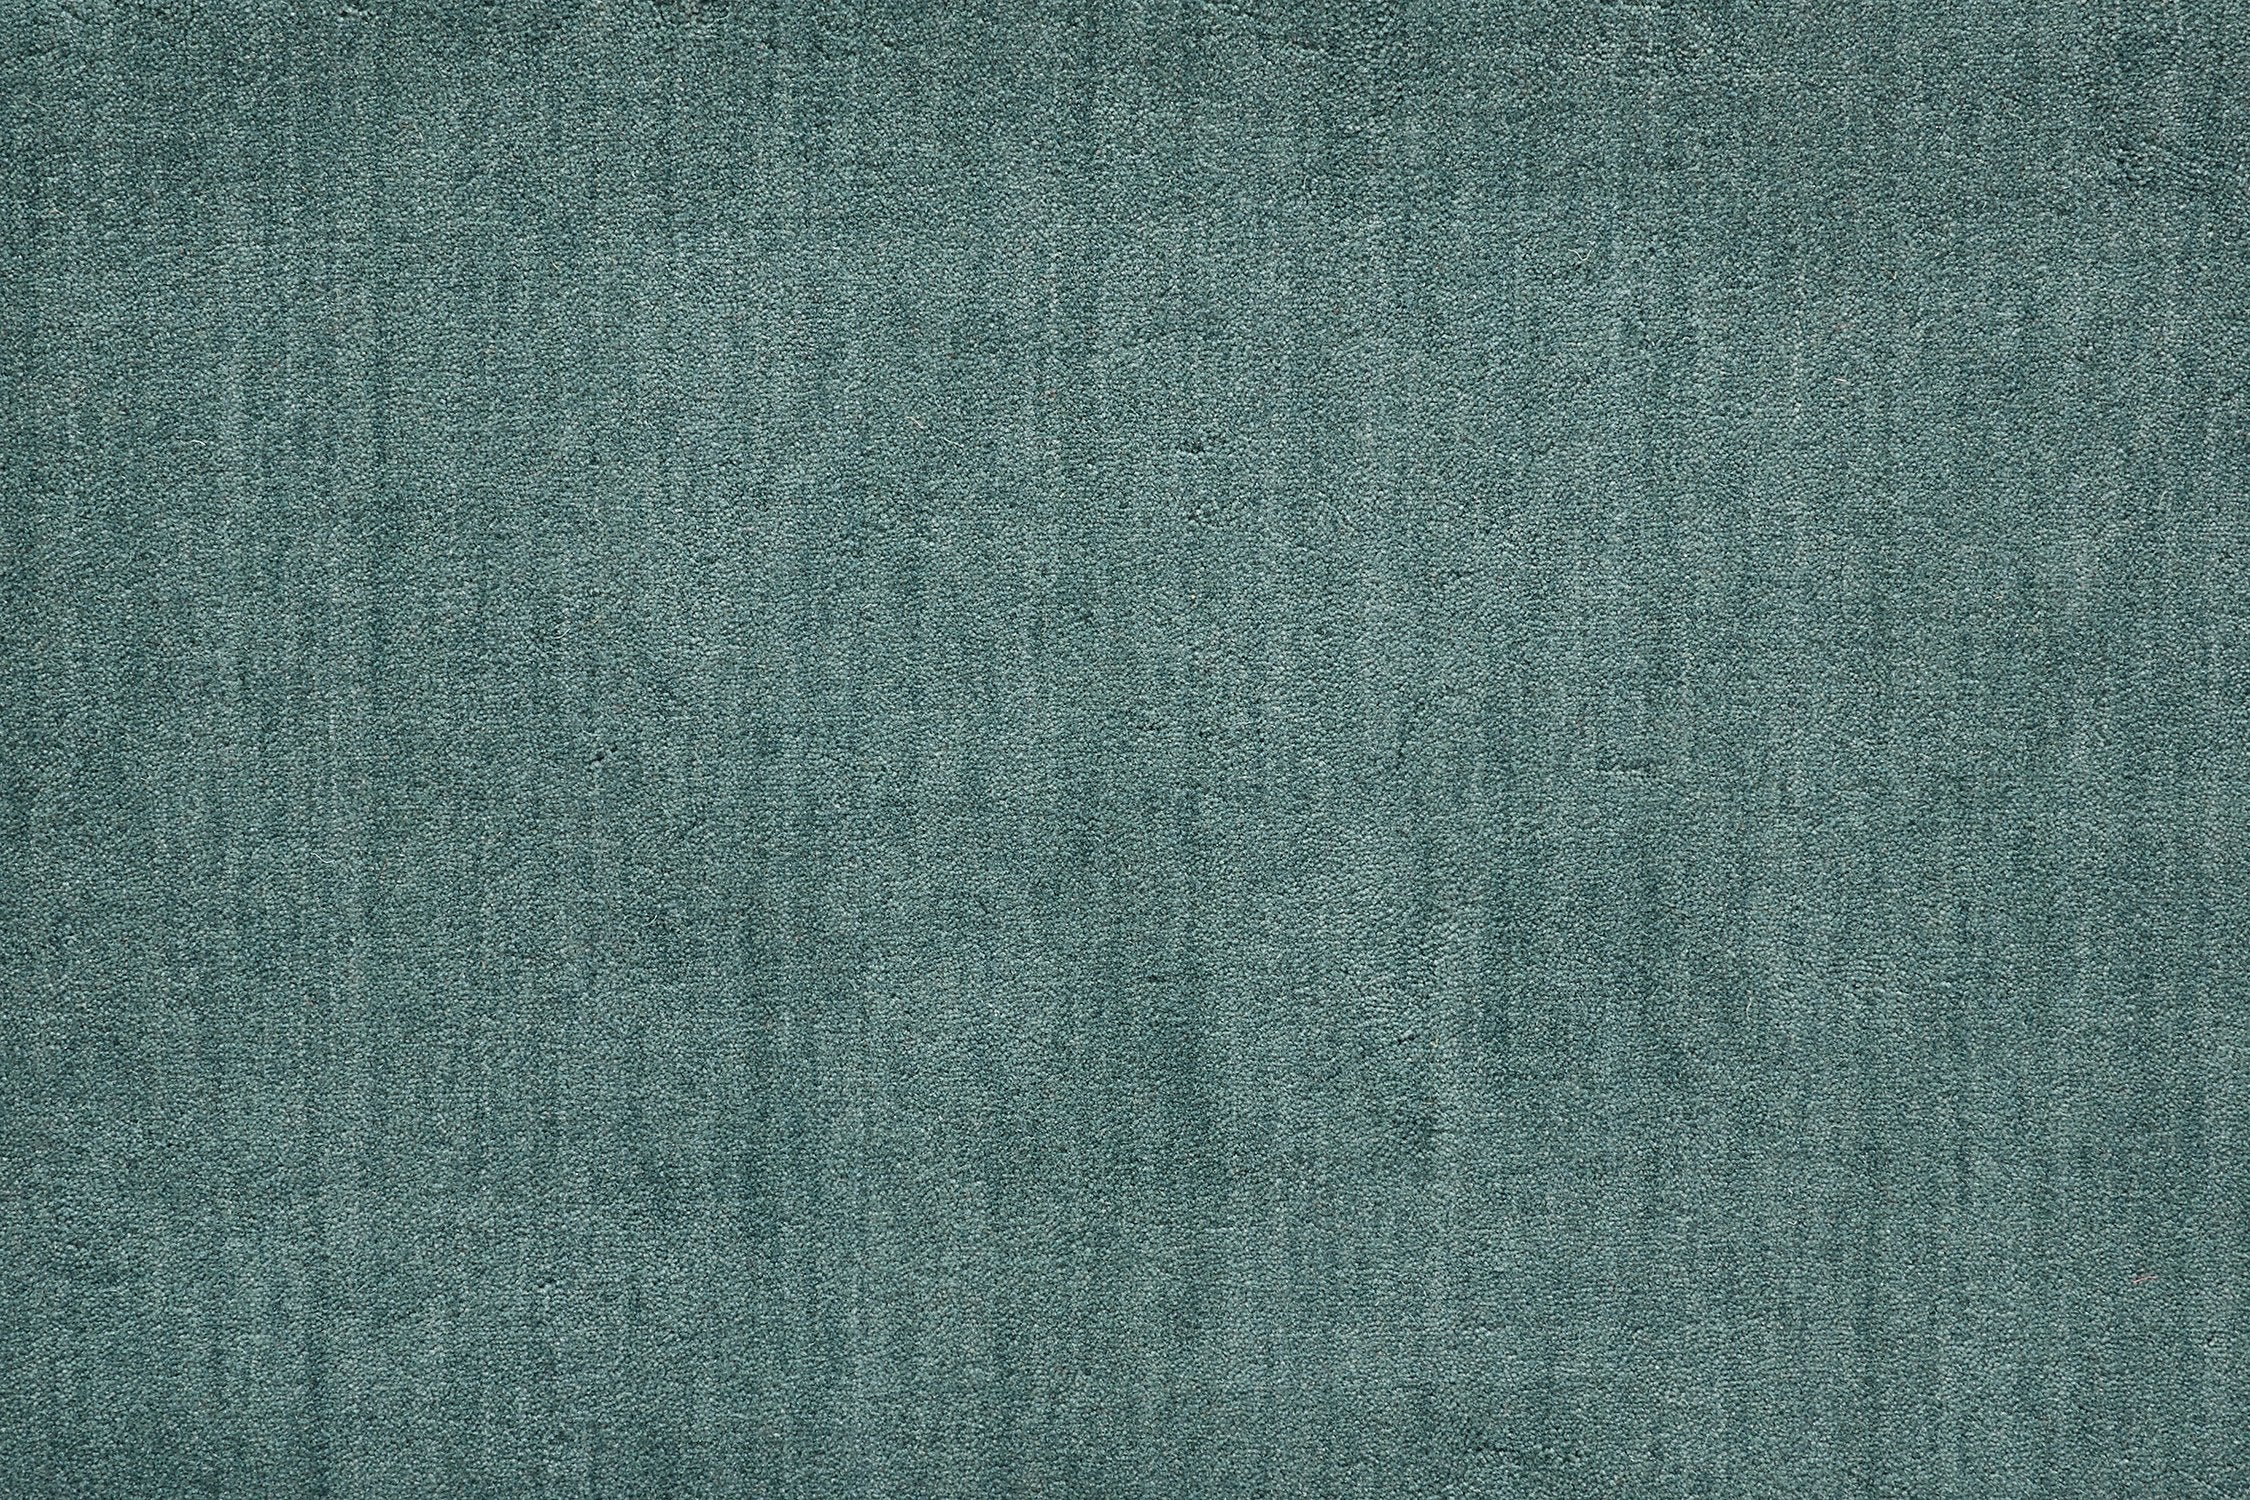 Grand Velvet broadloom runner Shop Tapis Blue